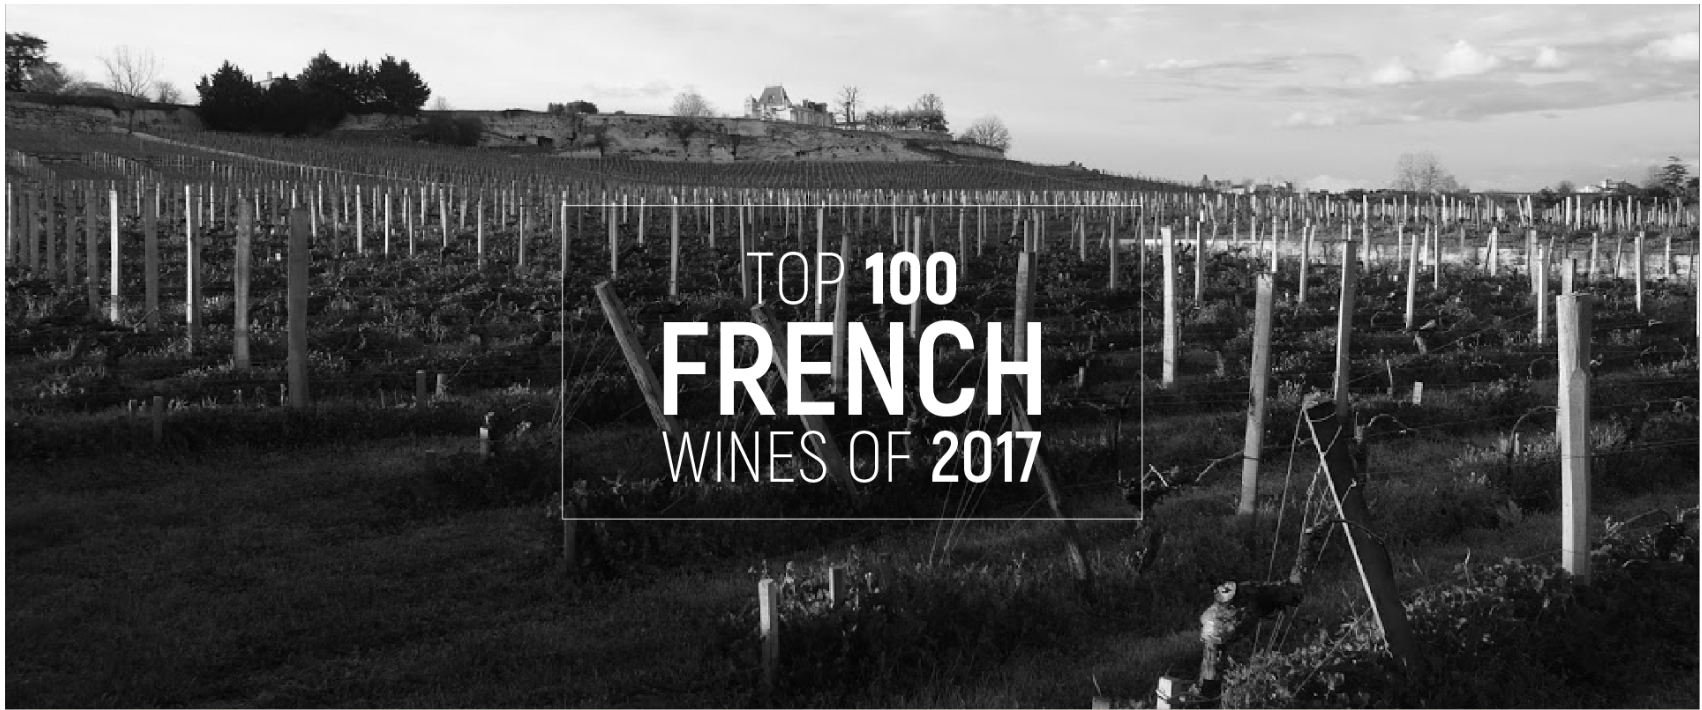 James Suckling: Top 100 French Wines of 2017 (ft. Famille Perrin Château de Beaucastel, Champagne Salon, and Domaine Weinbach) | 1/9/18